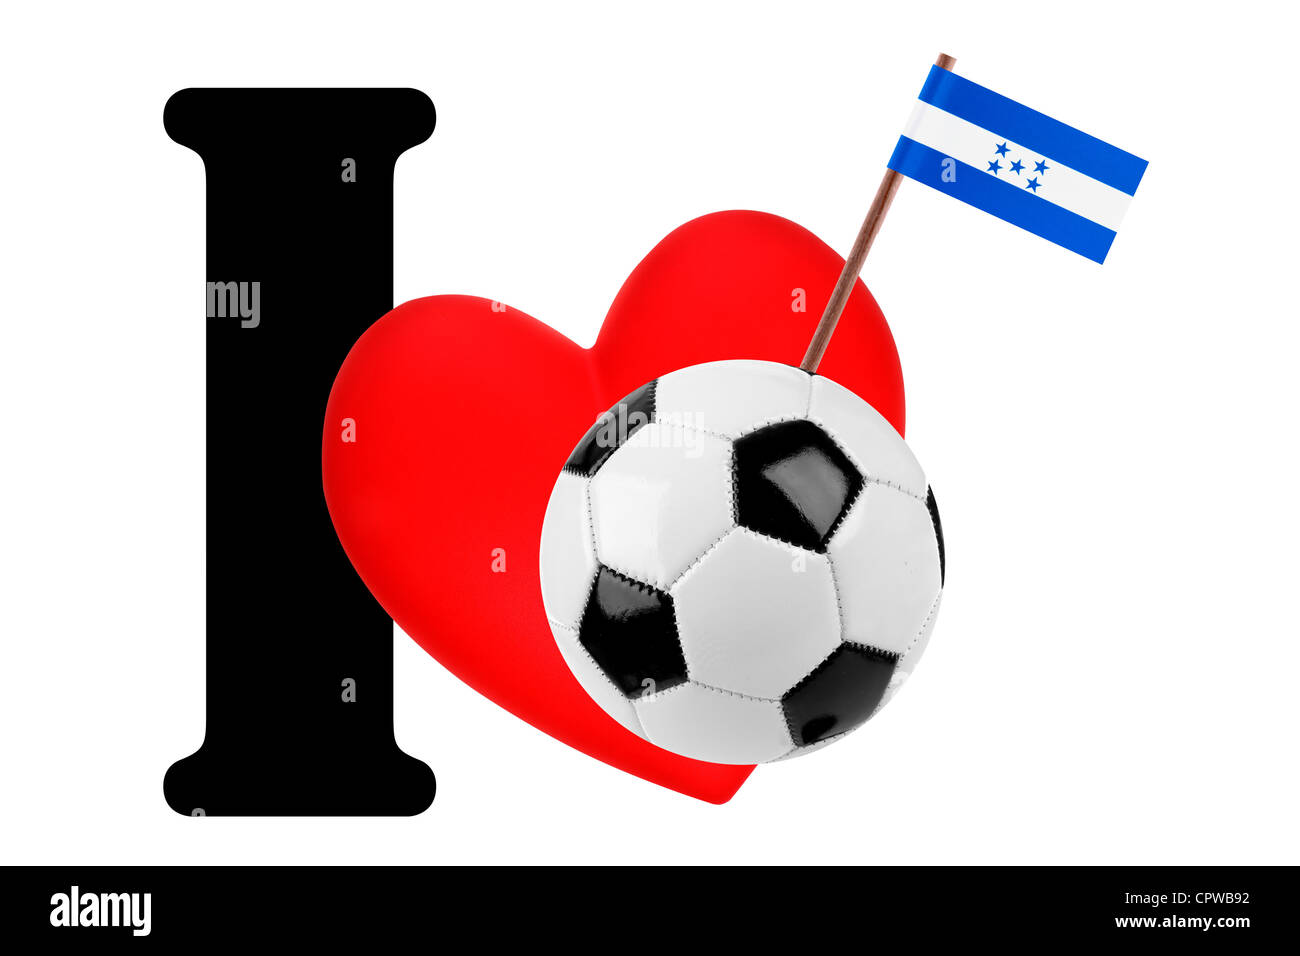 Small flag on a red heart and the word I to express love for the national flag of Honduras Stock Photo